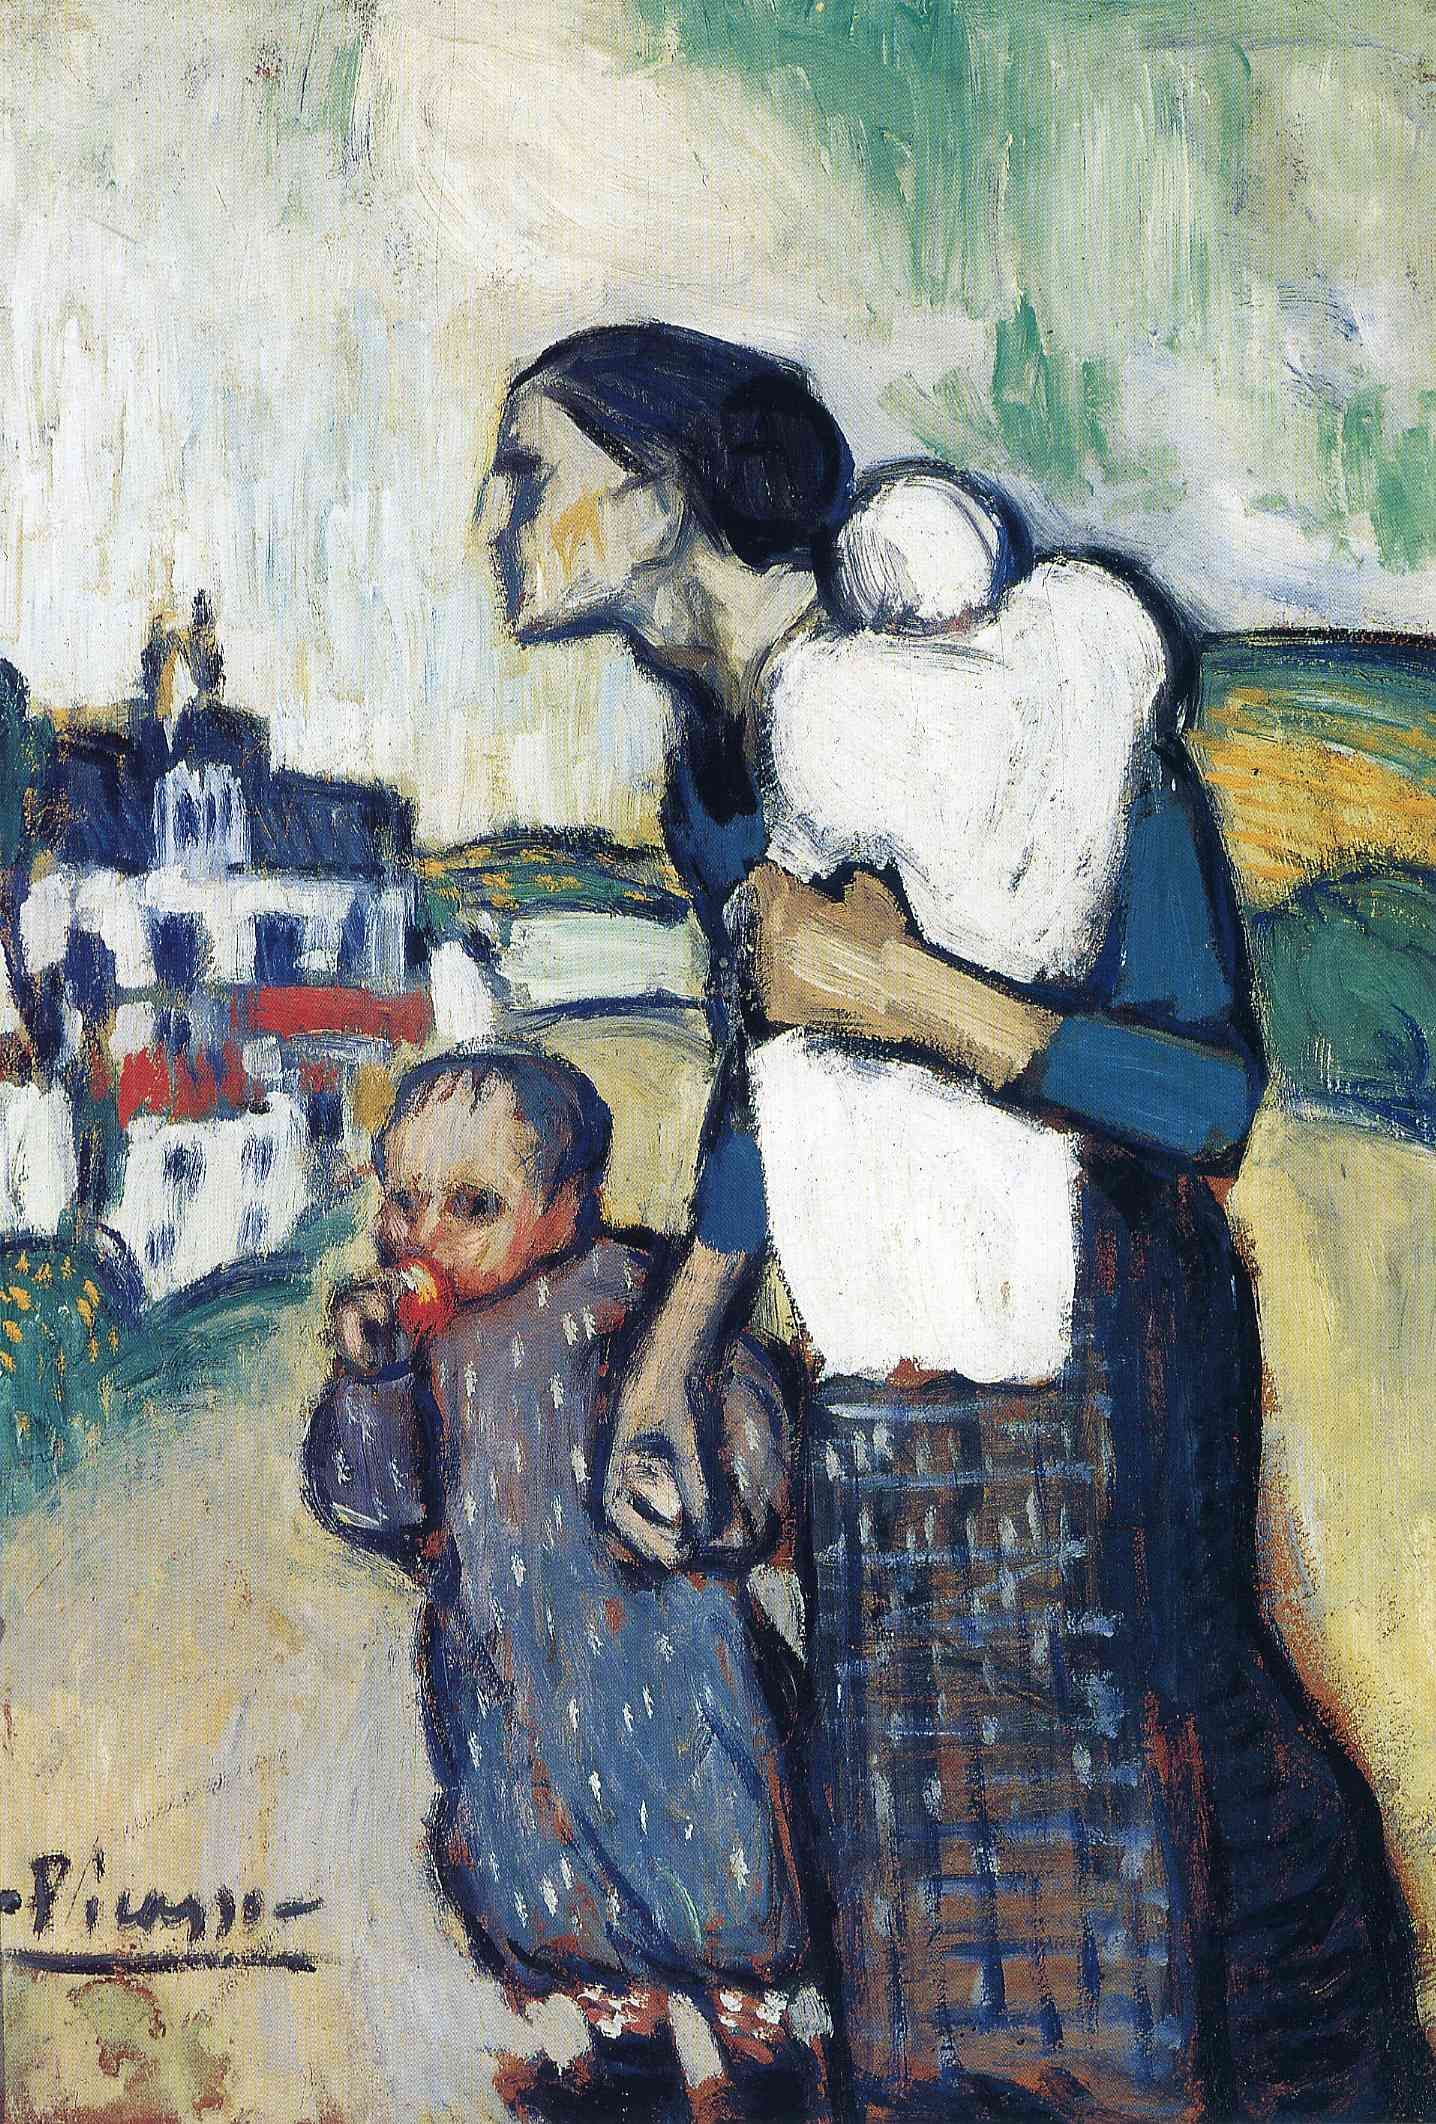 The mother leading two children - Pablo Picasso - Blue Period - 1901 ...